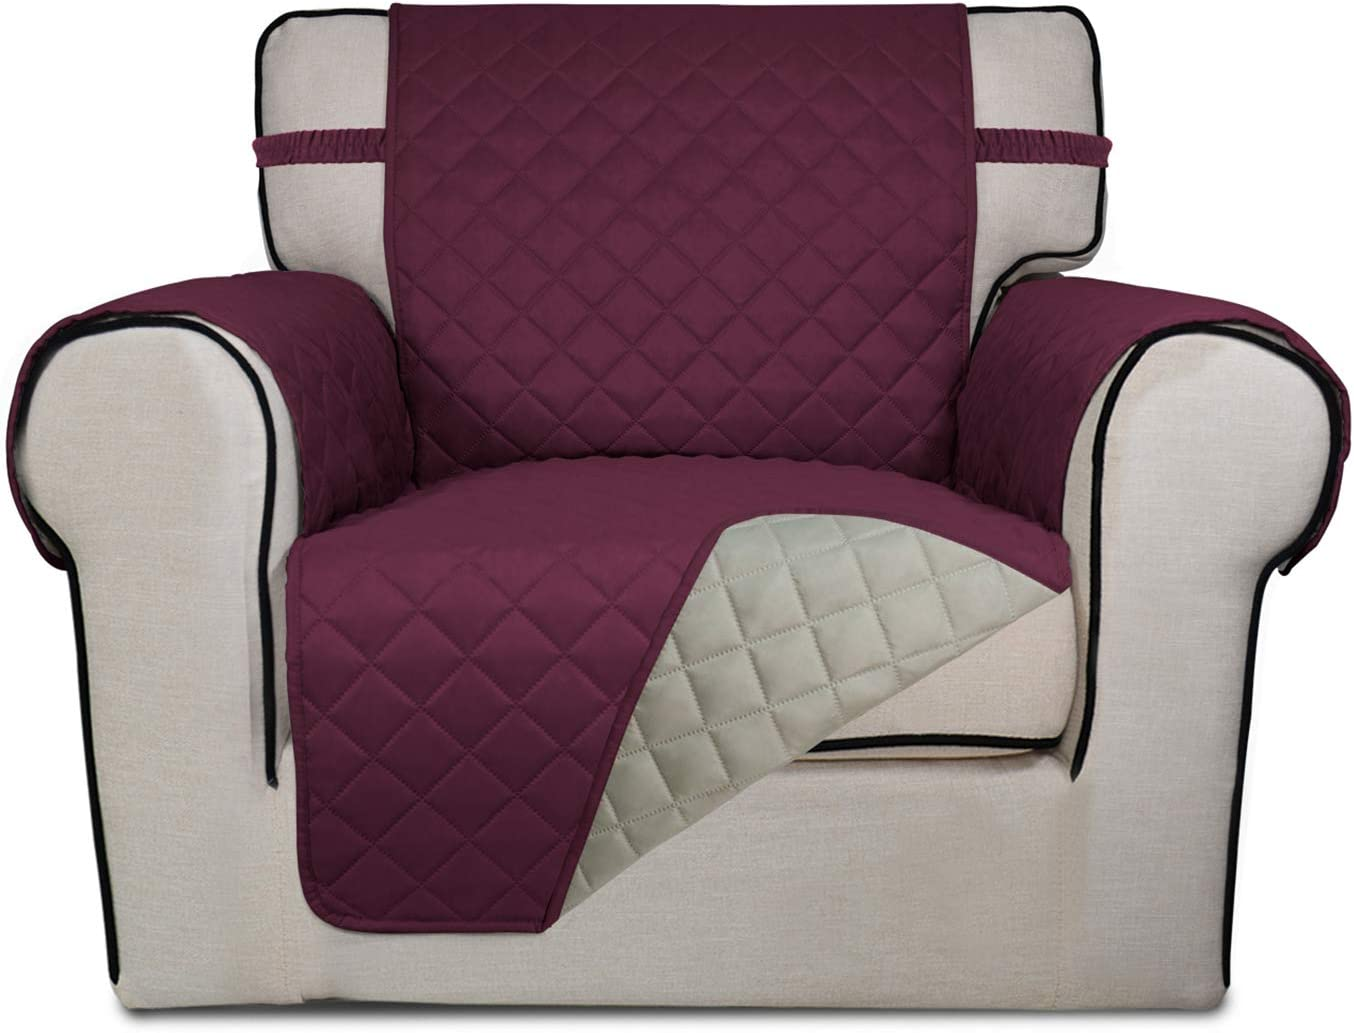 PureFit Reversible Quilted Sofa Cover, Water Resistant Slipcover Furniture Protector, Washable Couch Cover with Non Slip Foam and Elastic Straps for Kids, Dogs, Pets (Chair, Wine/Beige)